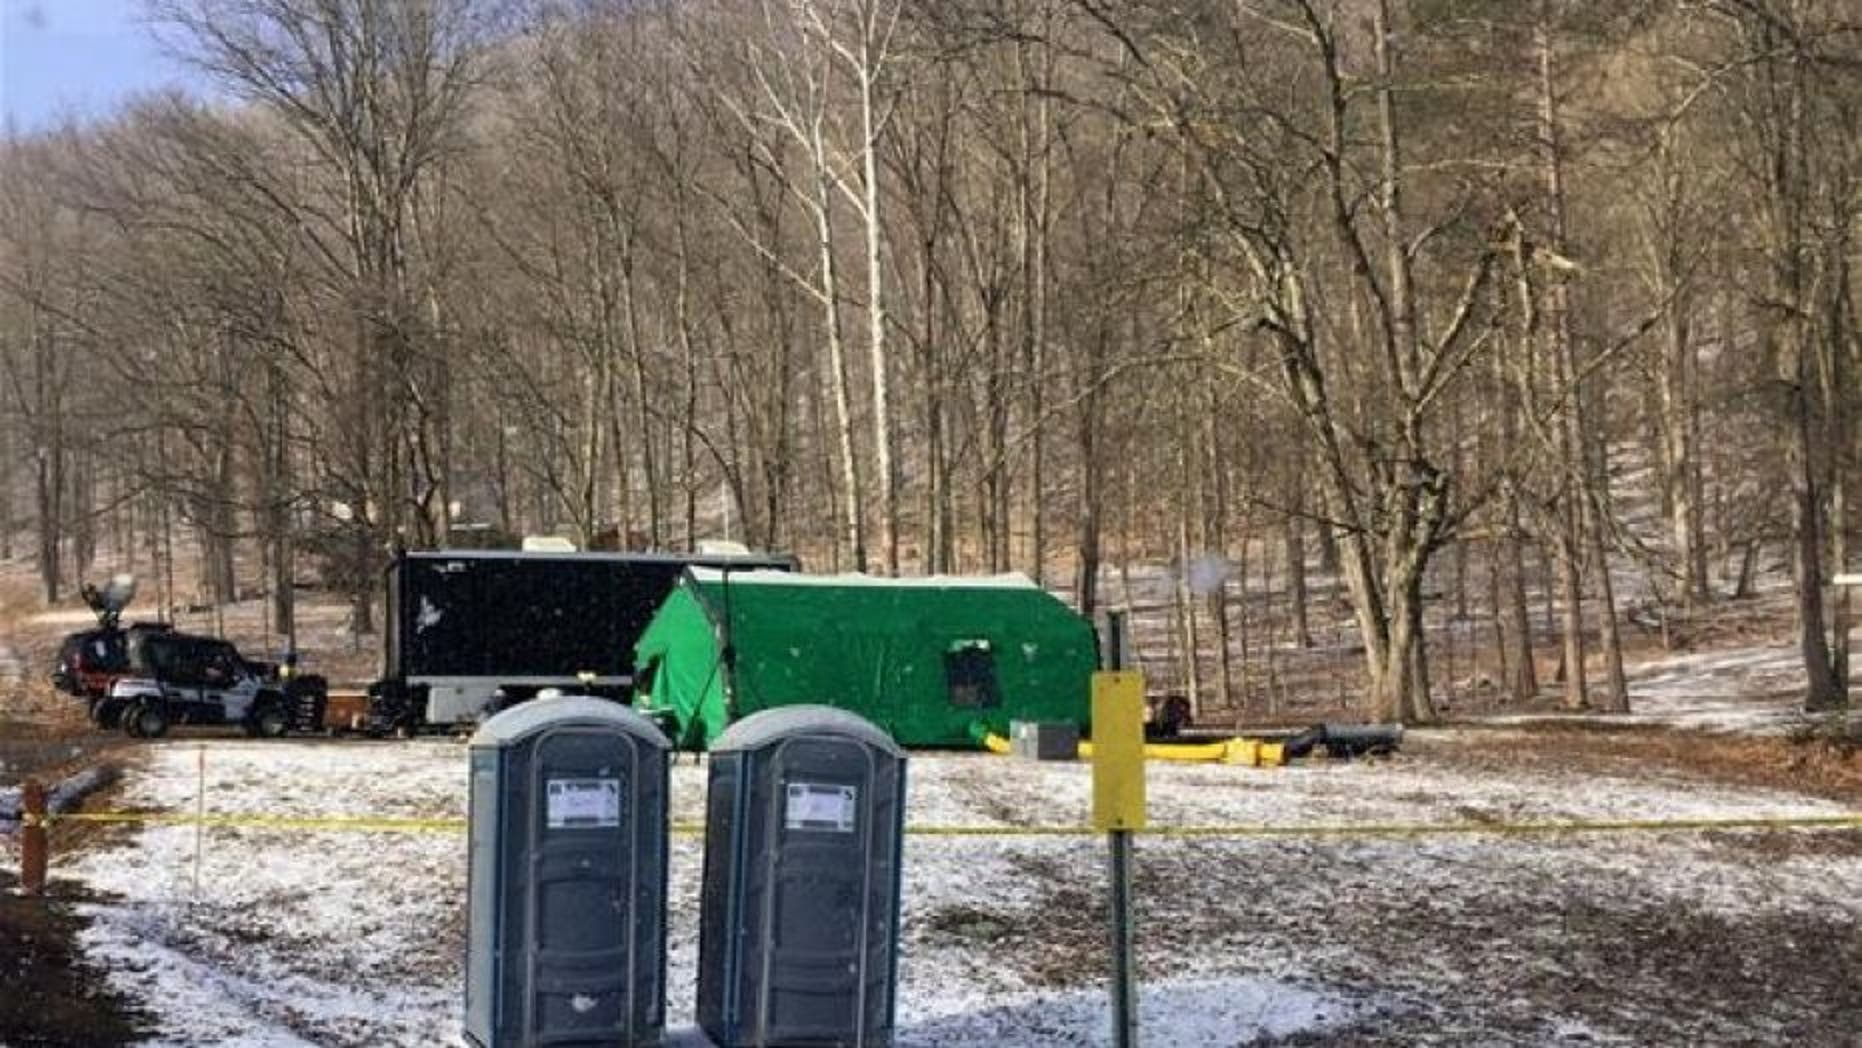 The FBI has come out empty handed at the remote Pennsylvania site where Civil War-era gold treasure is rumored to be buried.